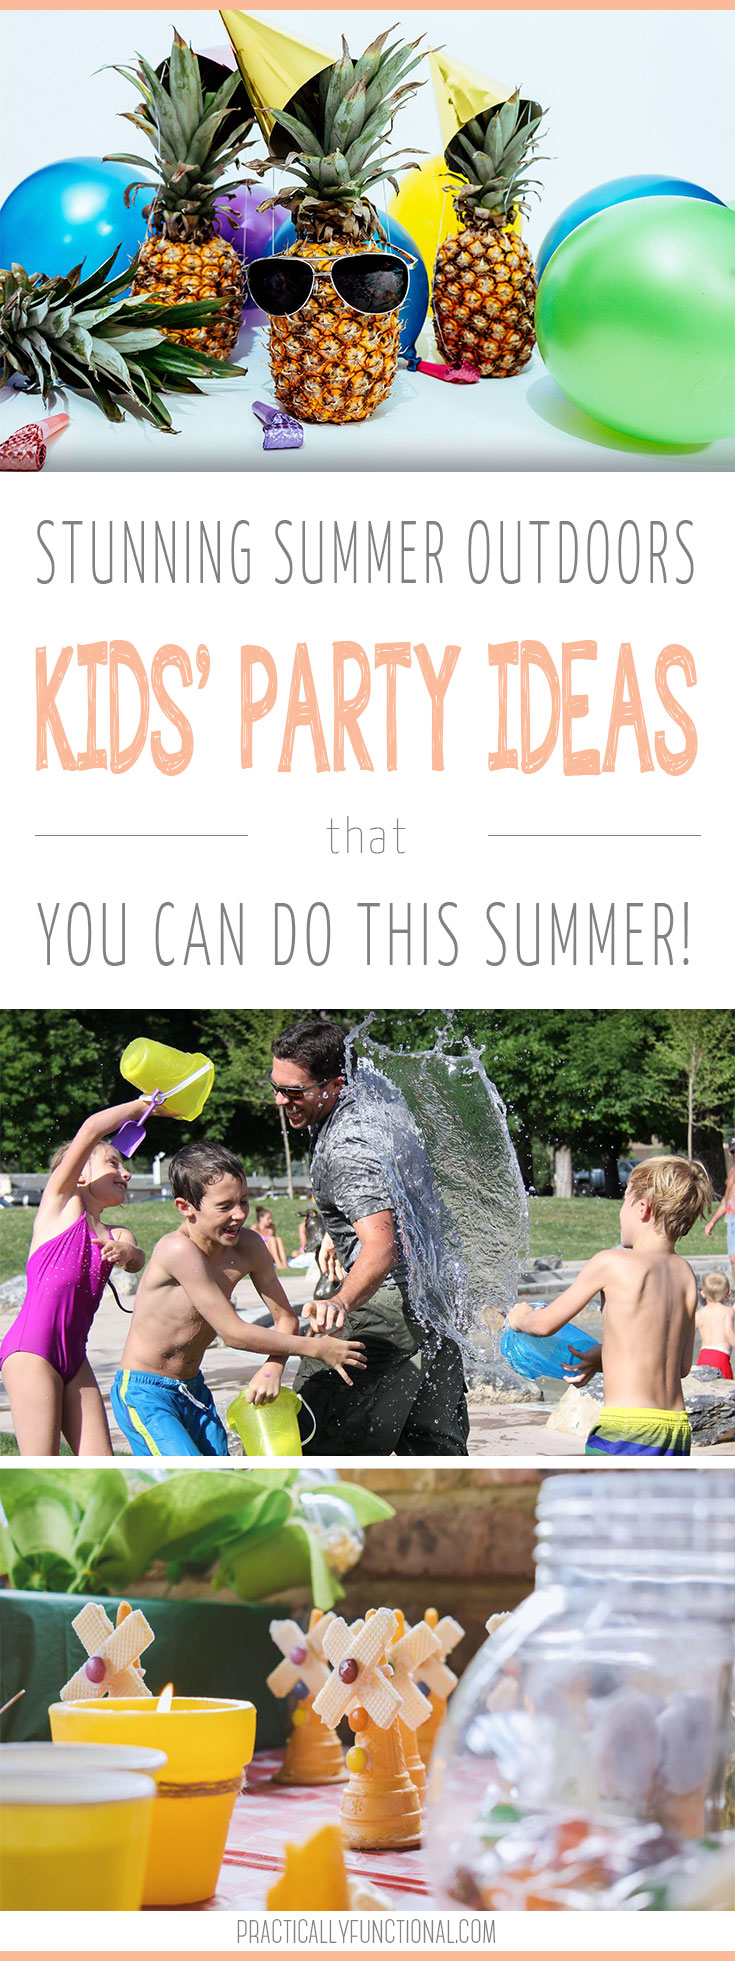 Are you looking for some great kids' party ideas for this summer? Here are seven stunning summer outdoor birthday party ideas that are fun for kids and easy to do! #birthdayparty #kidspartyideas